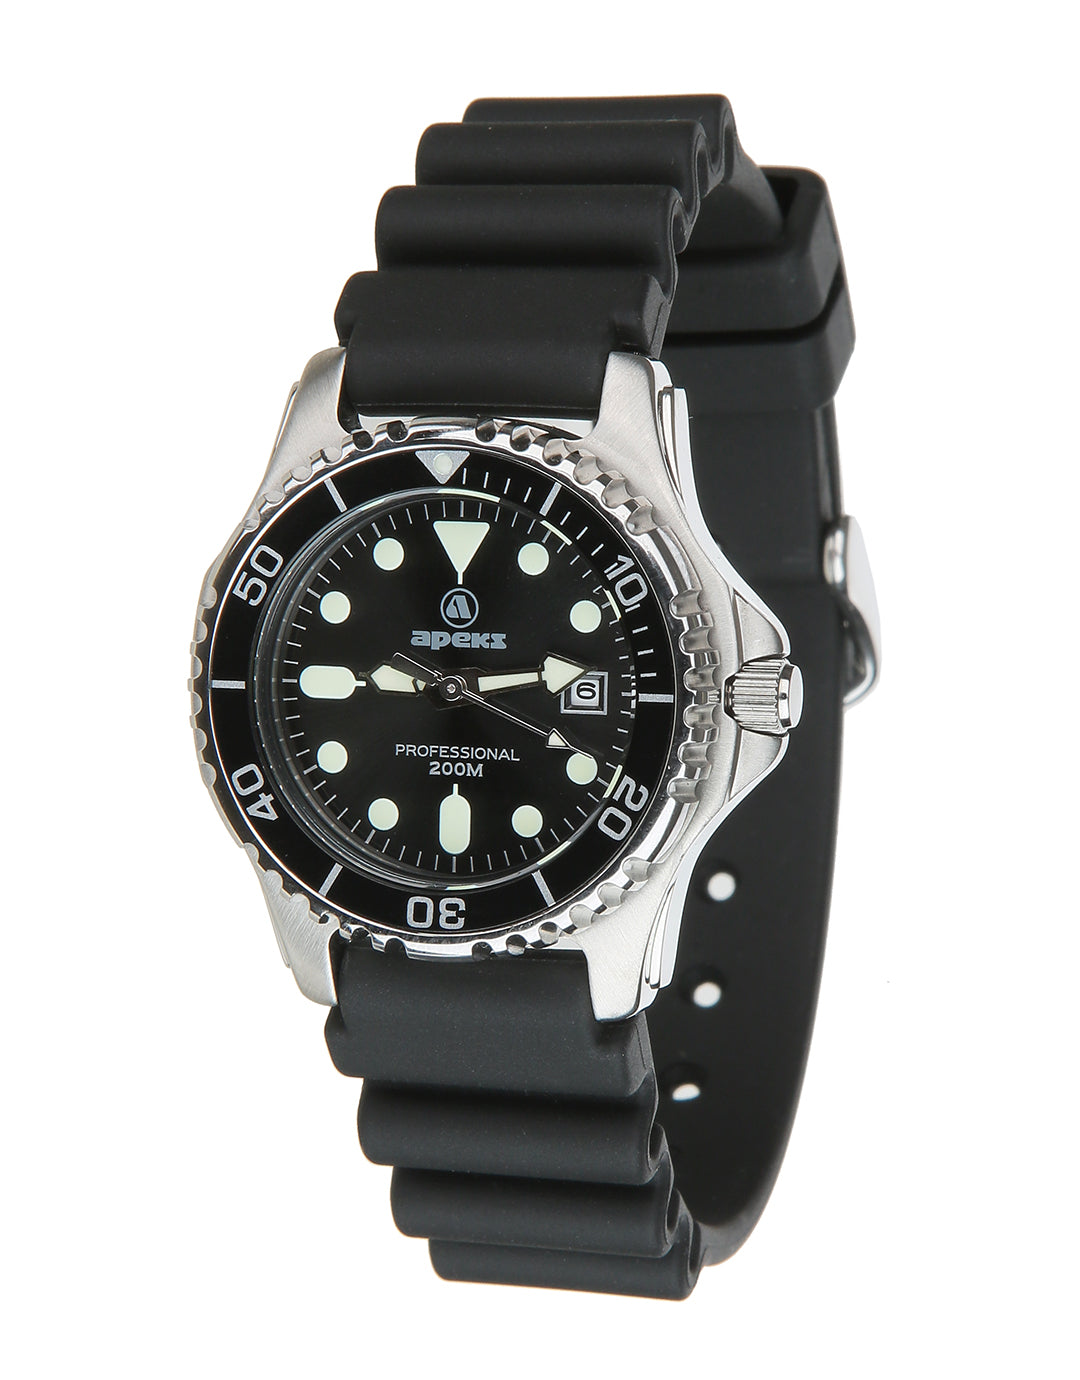 Image of Apeks Divers Watch - 200m